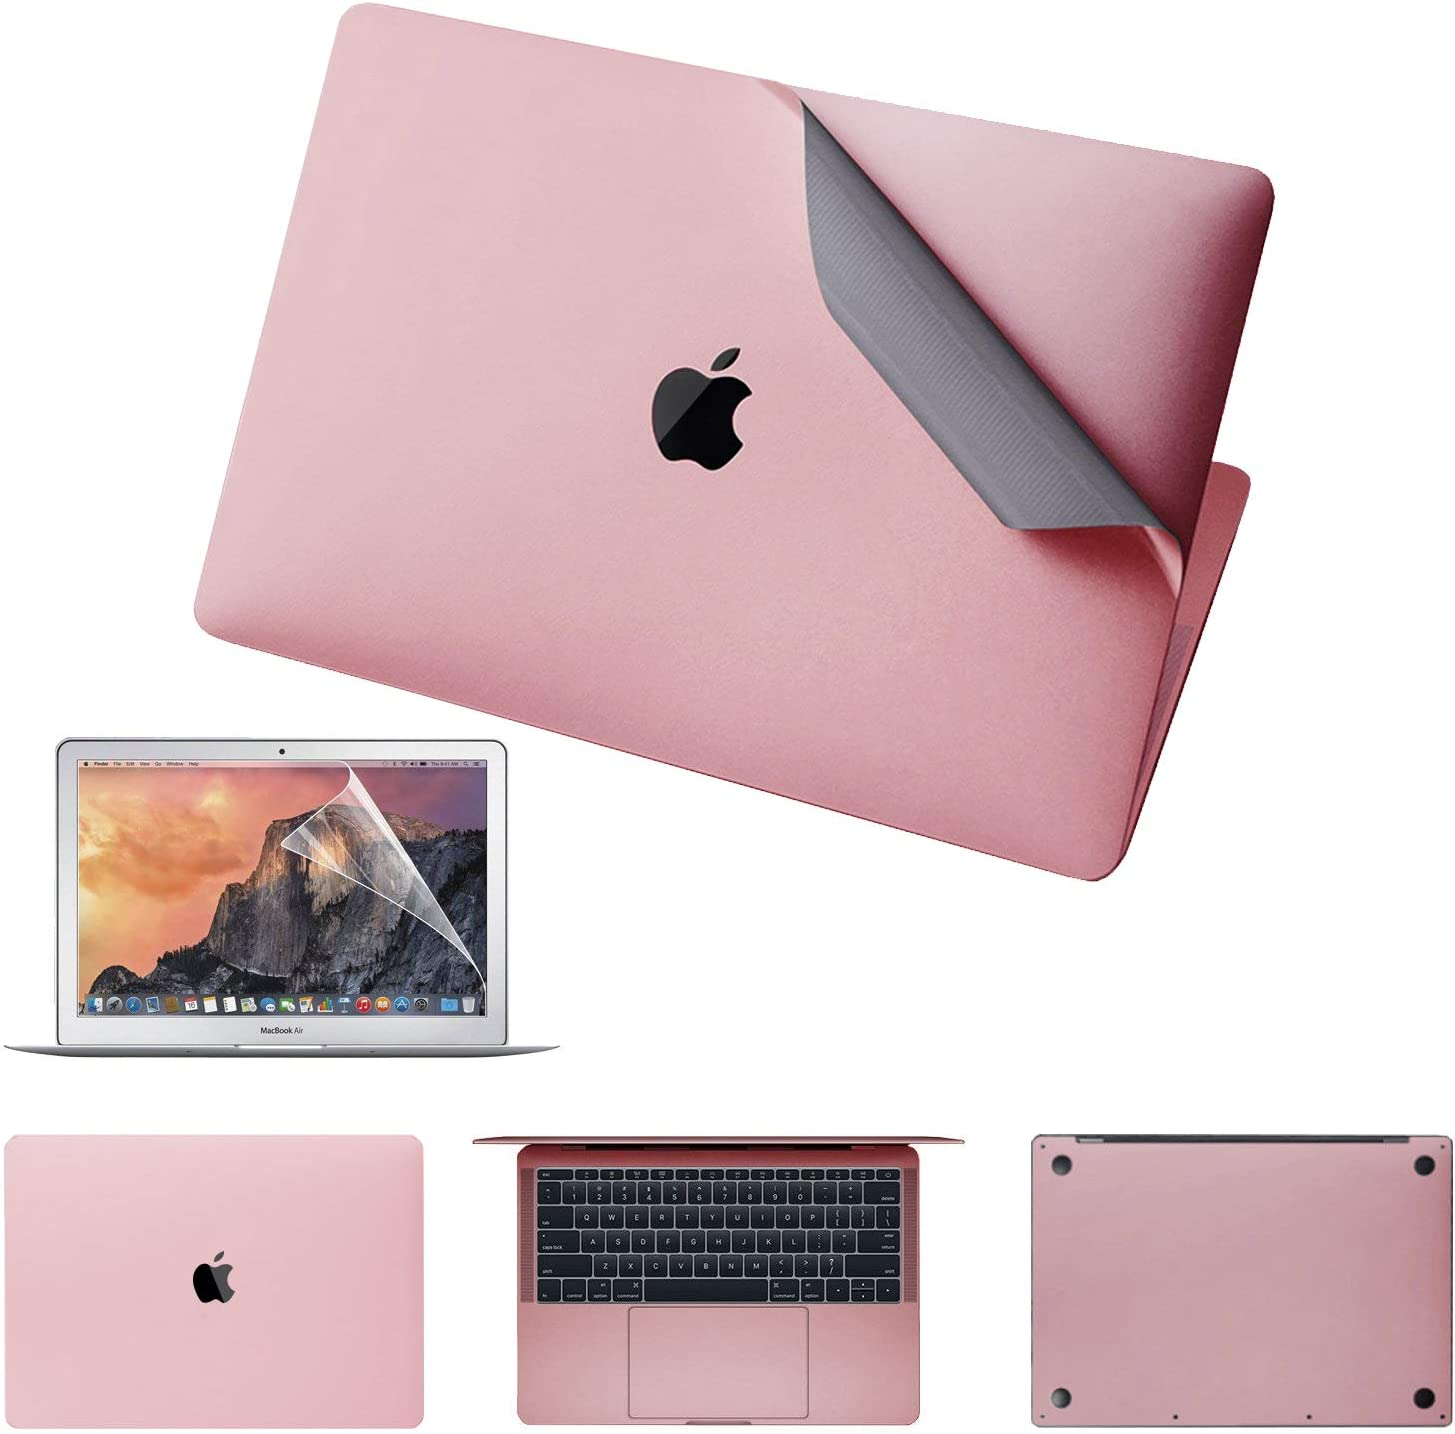 """JRCMAX 5-in-1 MacBook Full Body Stickers for MacBook 12"""" 12 inch Retina Model A1534,3M Full-Cover Protector Vinyl Decal Skin [Top + Bottom + Touchpad + Palm Rest) with Screen Protector (Rose Gold)"""